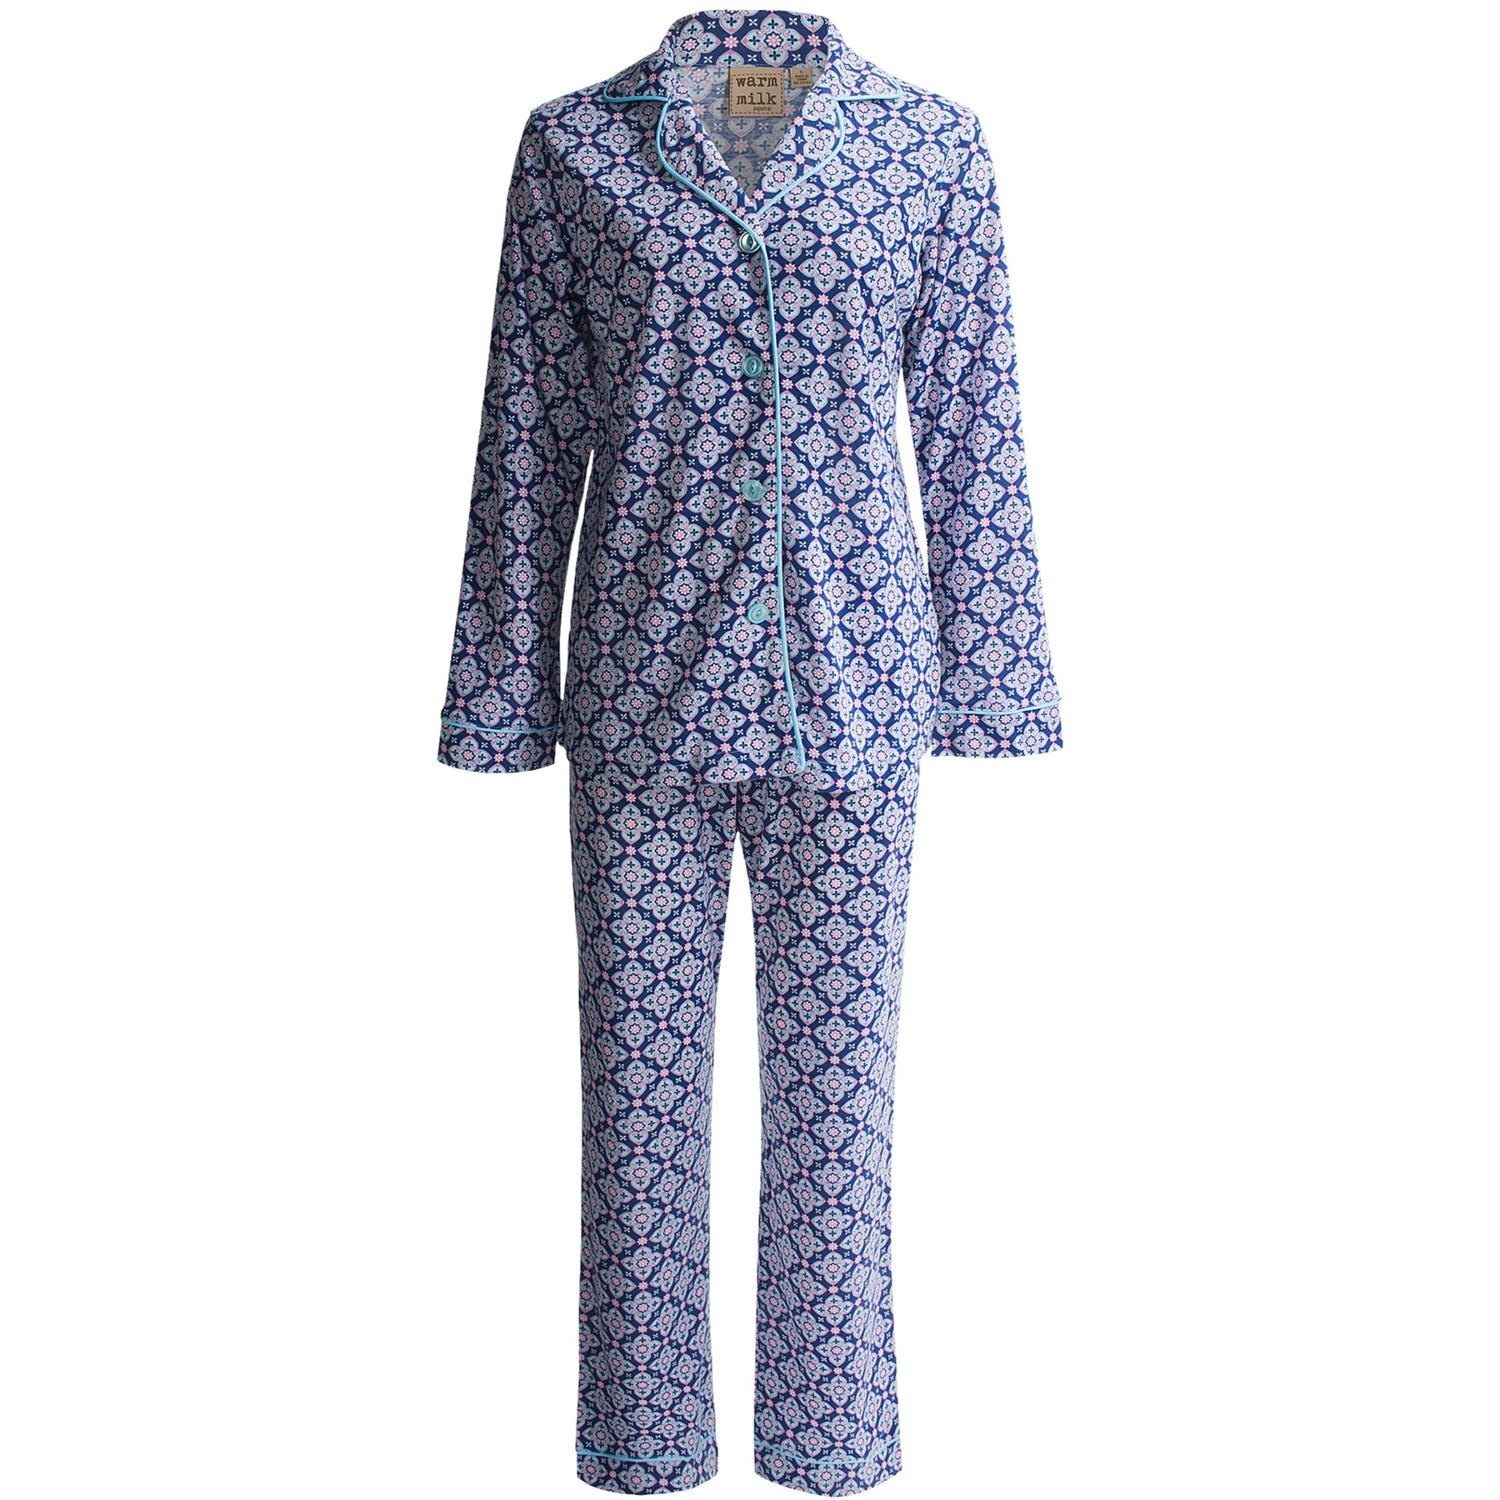 Shop for womens warm pajamas online at Target. Free shipping on purchases over $35 and save 5% every day with your Target REDcard.